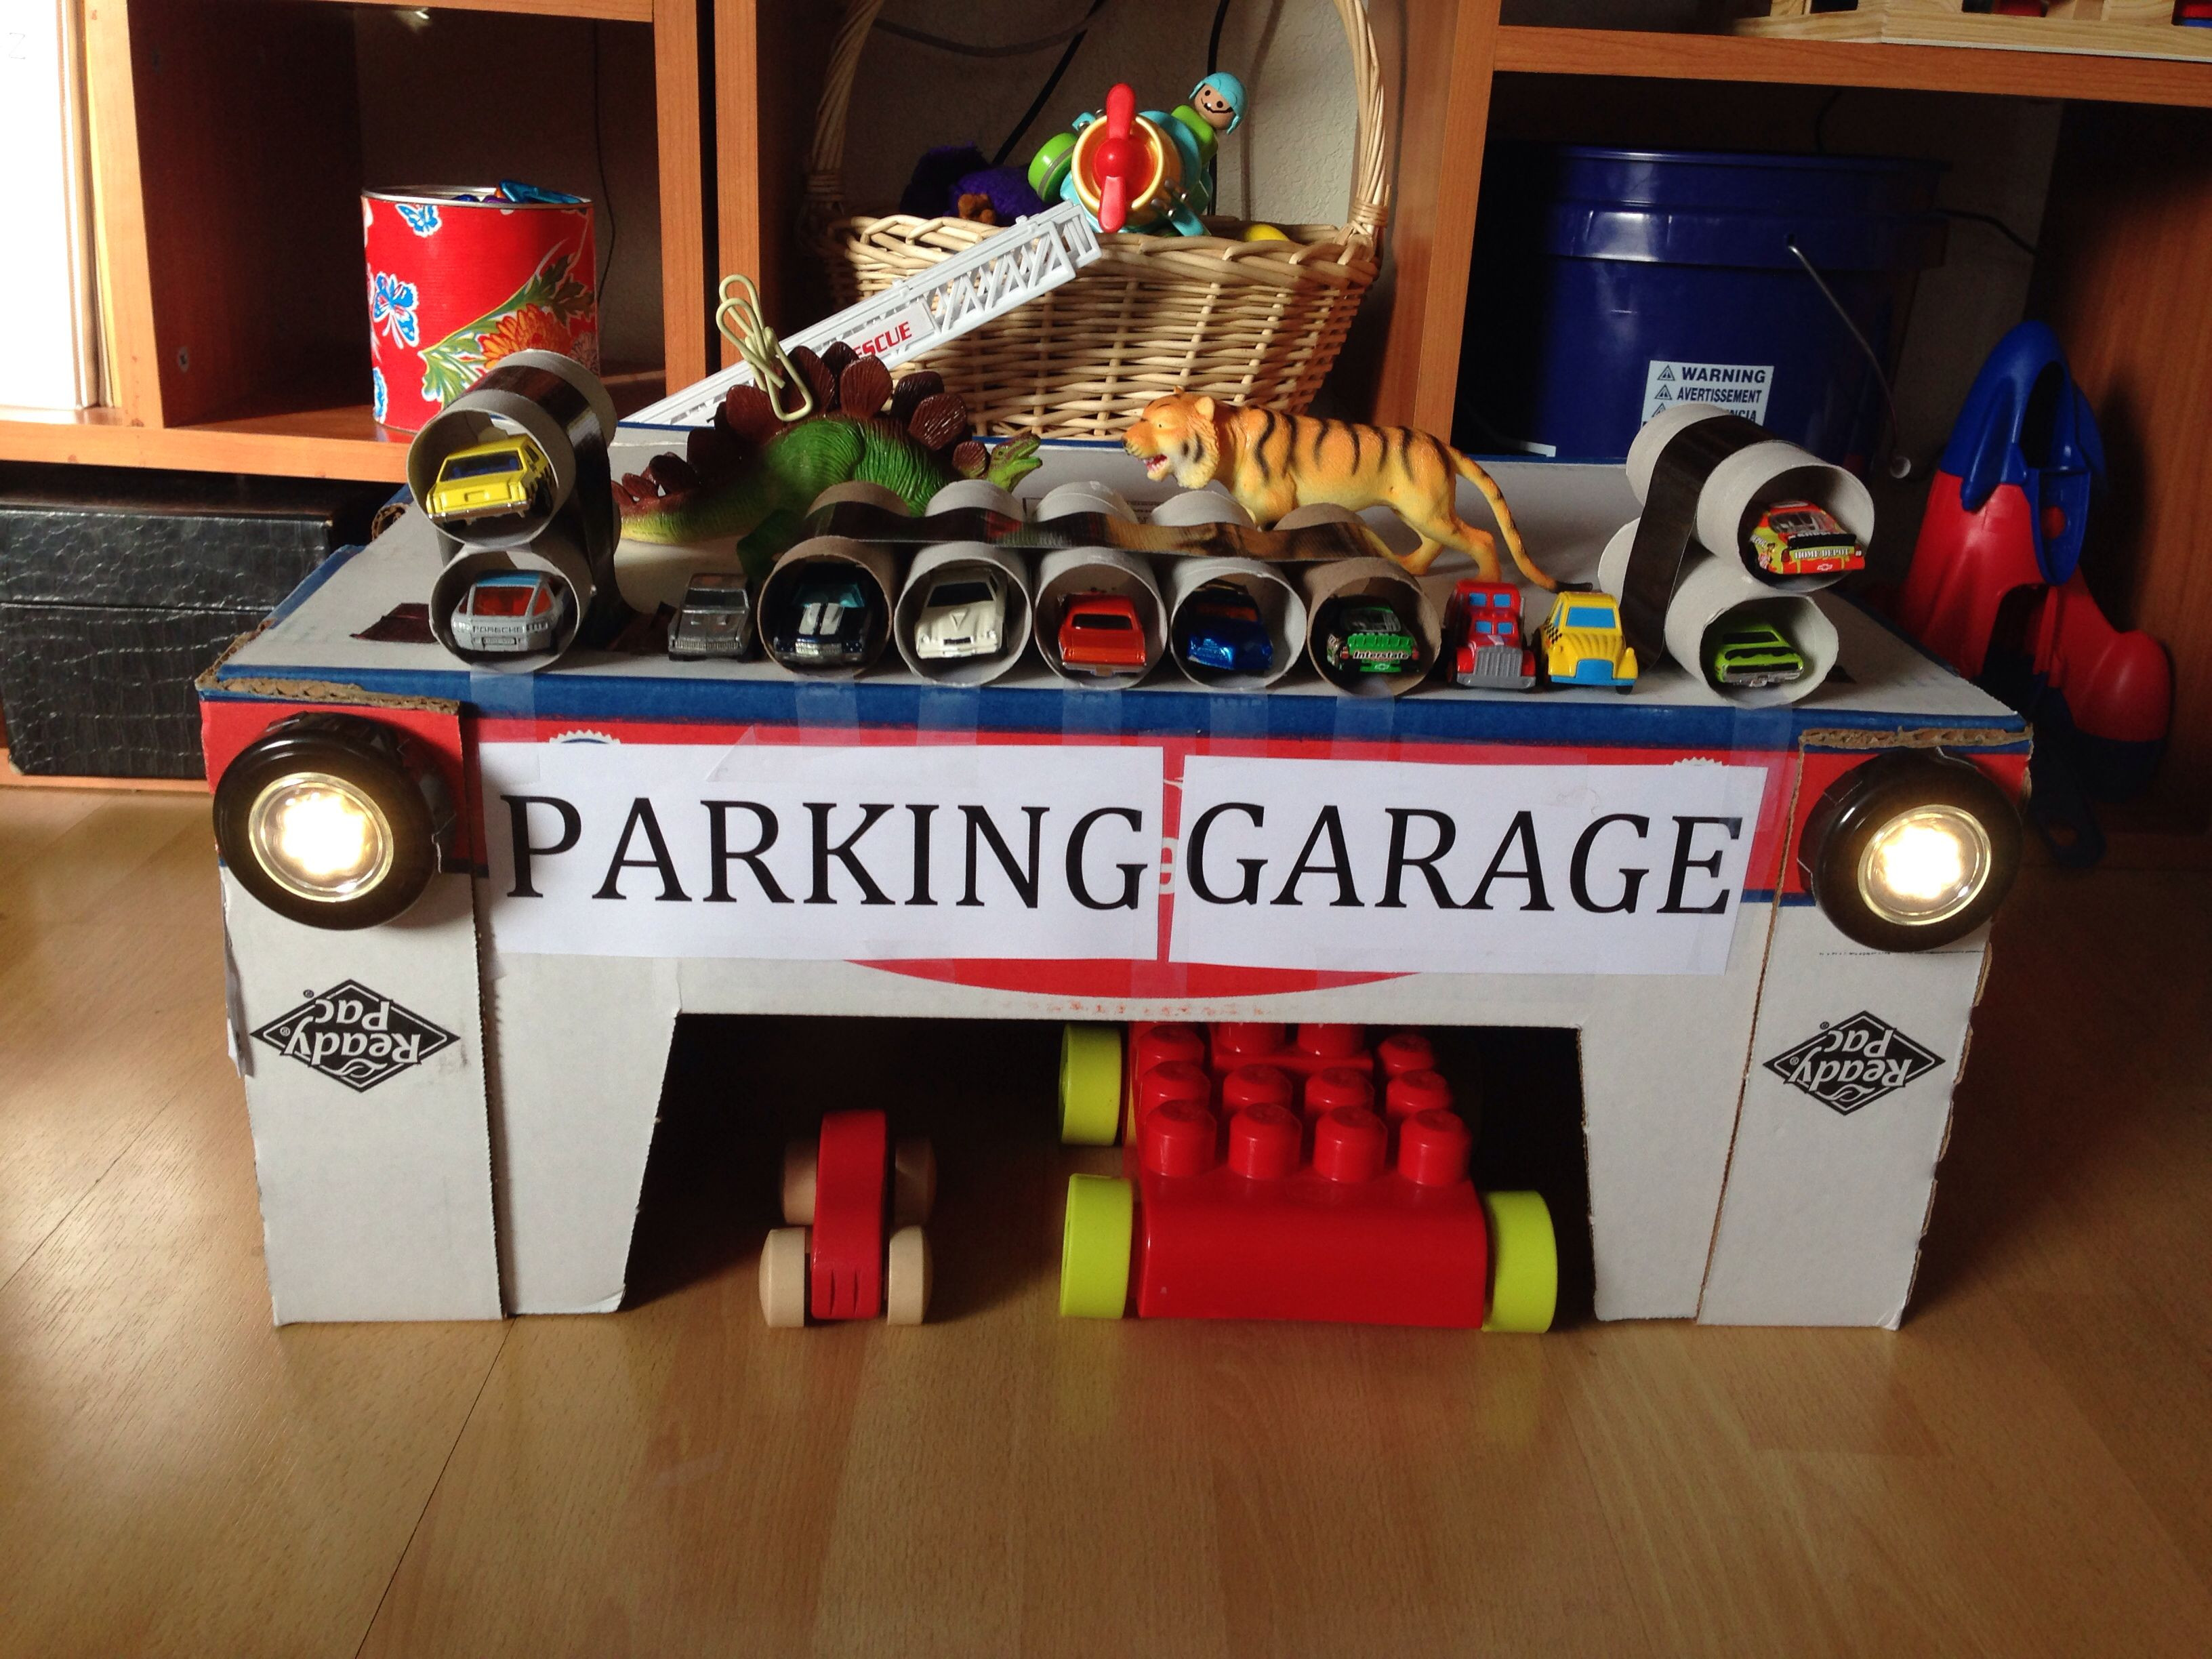 Best ideas about DIY Car Garage . Save or Pin DIY toy parking garage Cardboard box from Costco and Now.